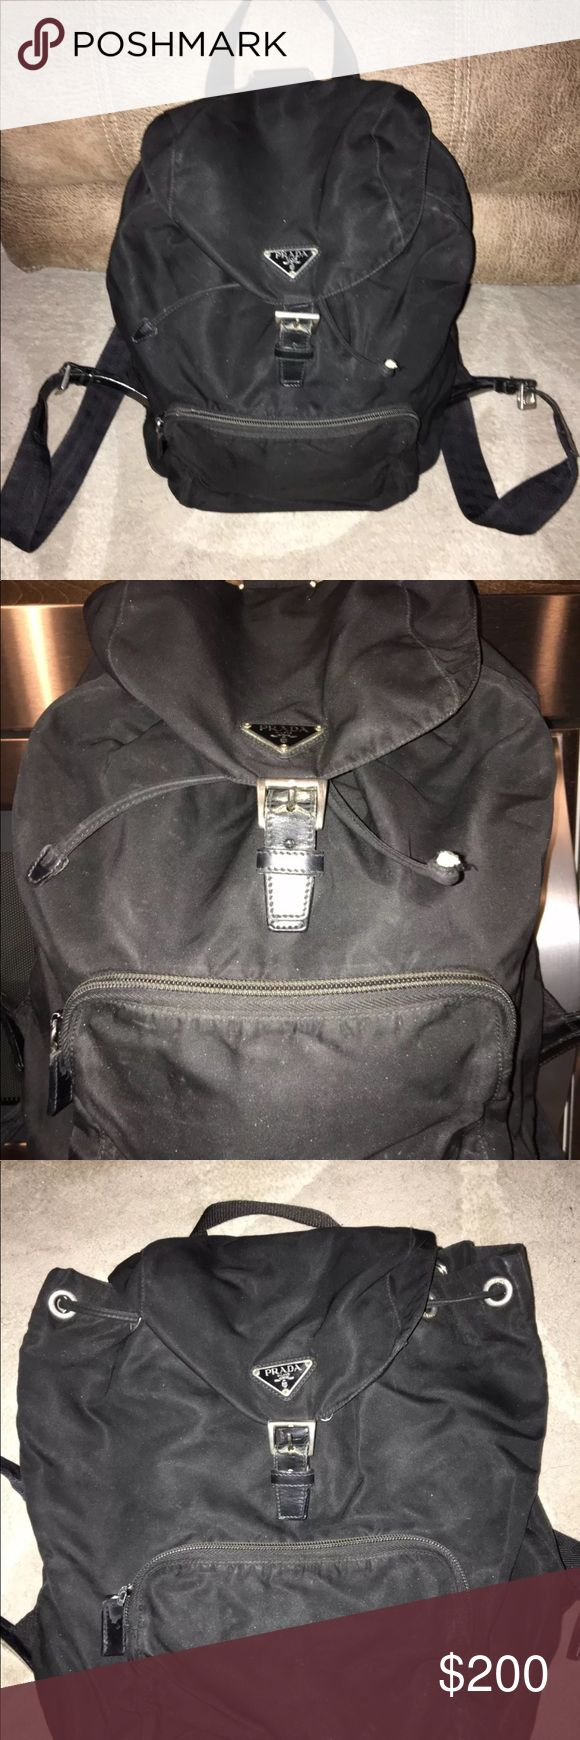 Authentic Prada backpack 100% authentic full size Prada backpack. Shows signs of wear but has lots of life left!! Accepting offers!! Prada Bags Backpacks